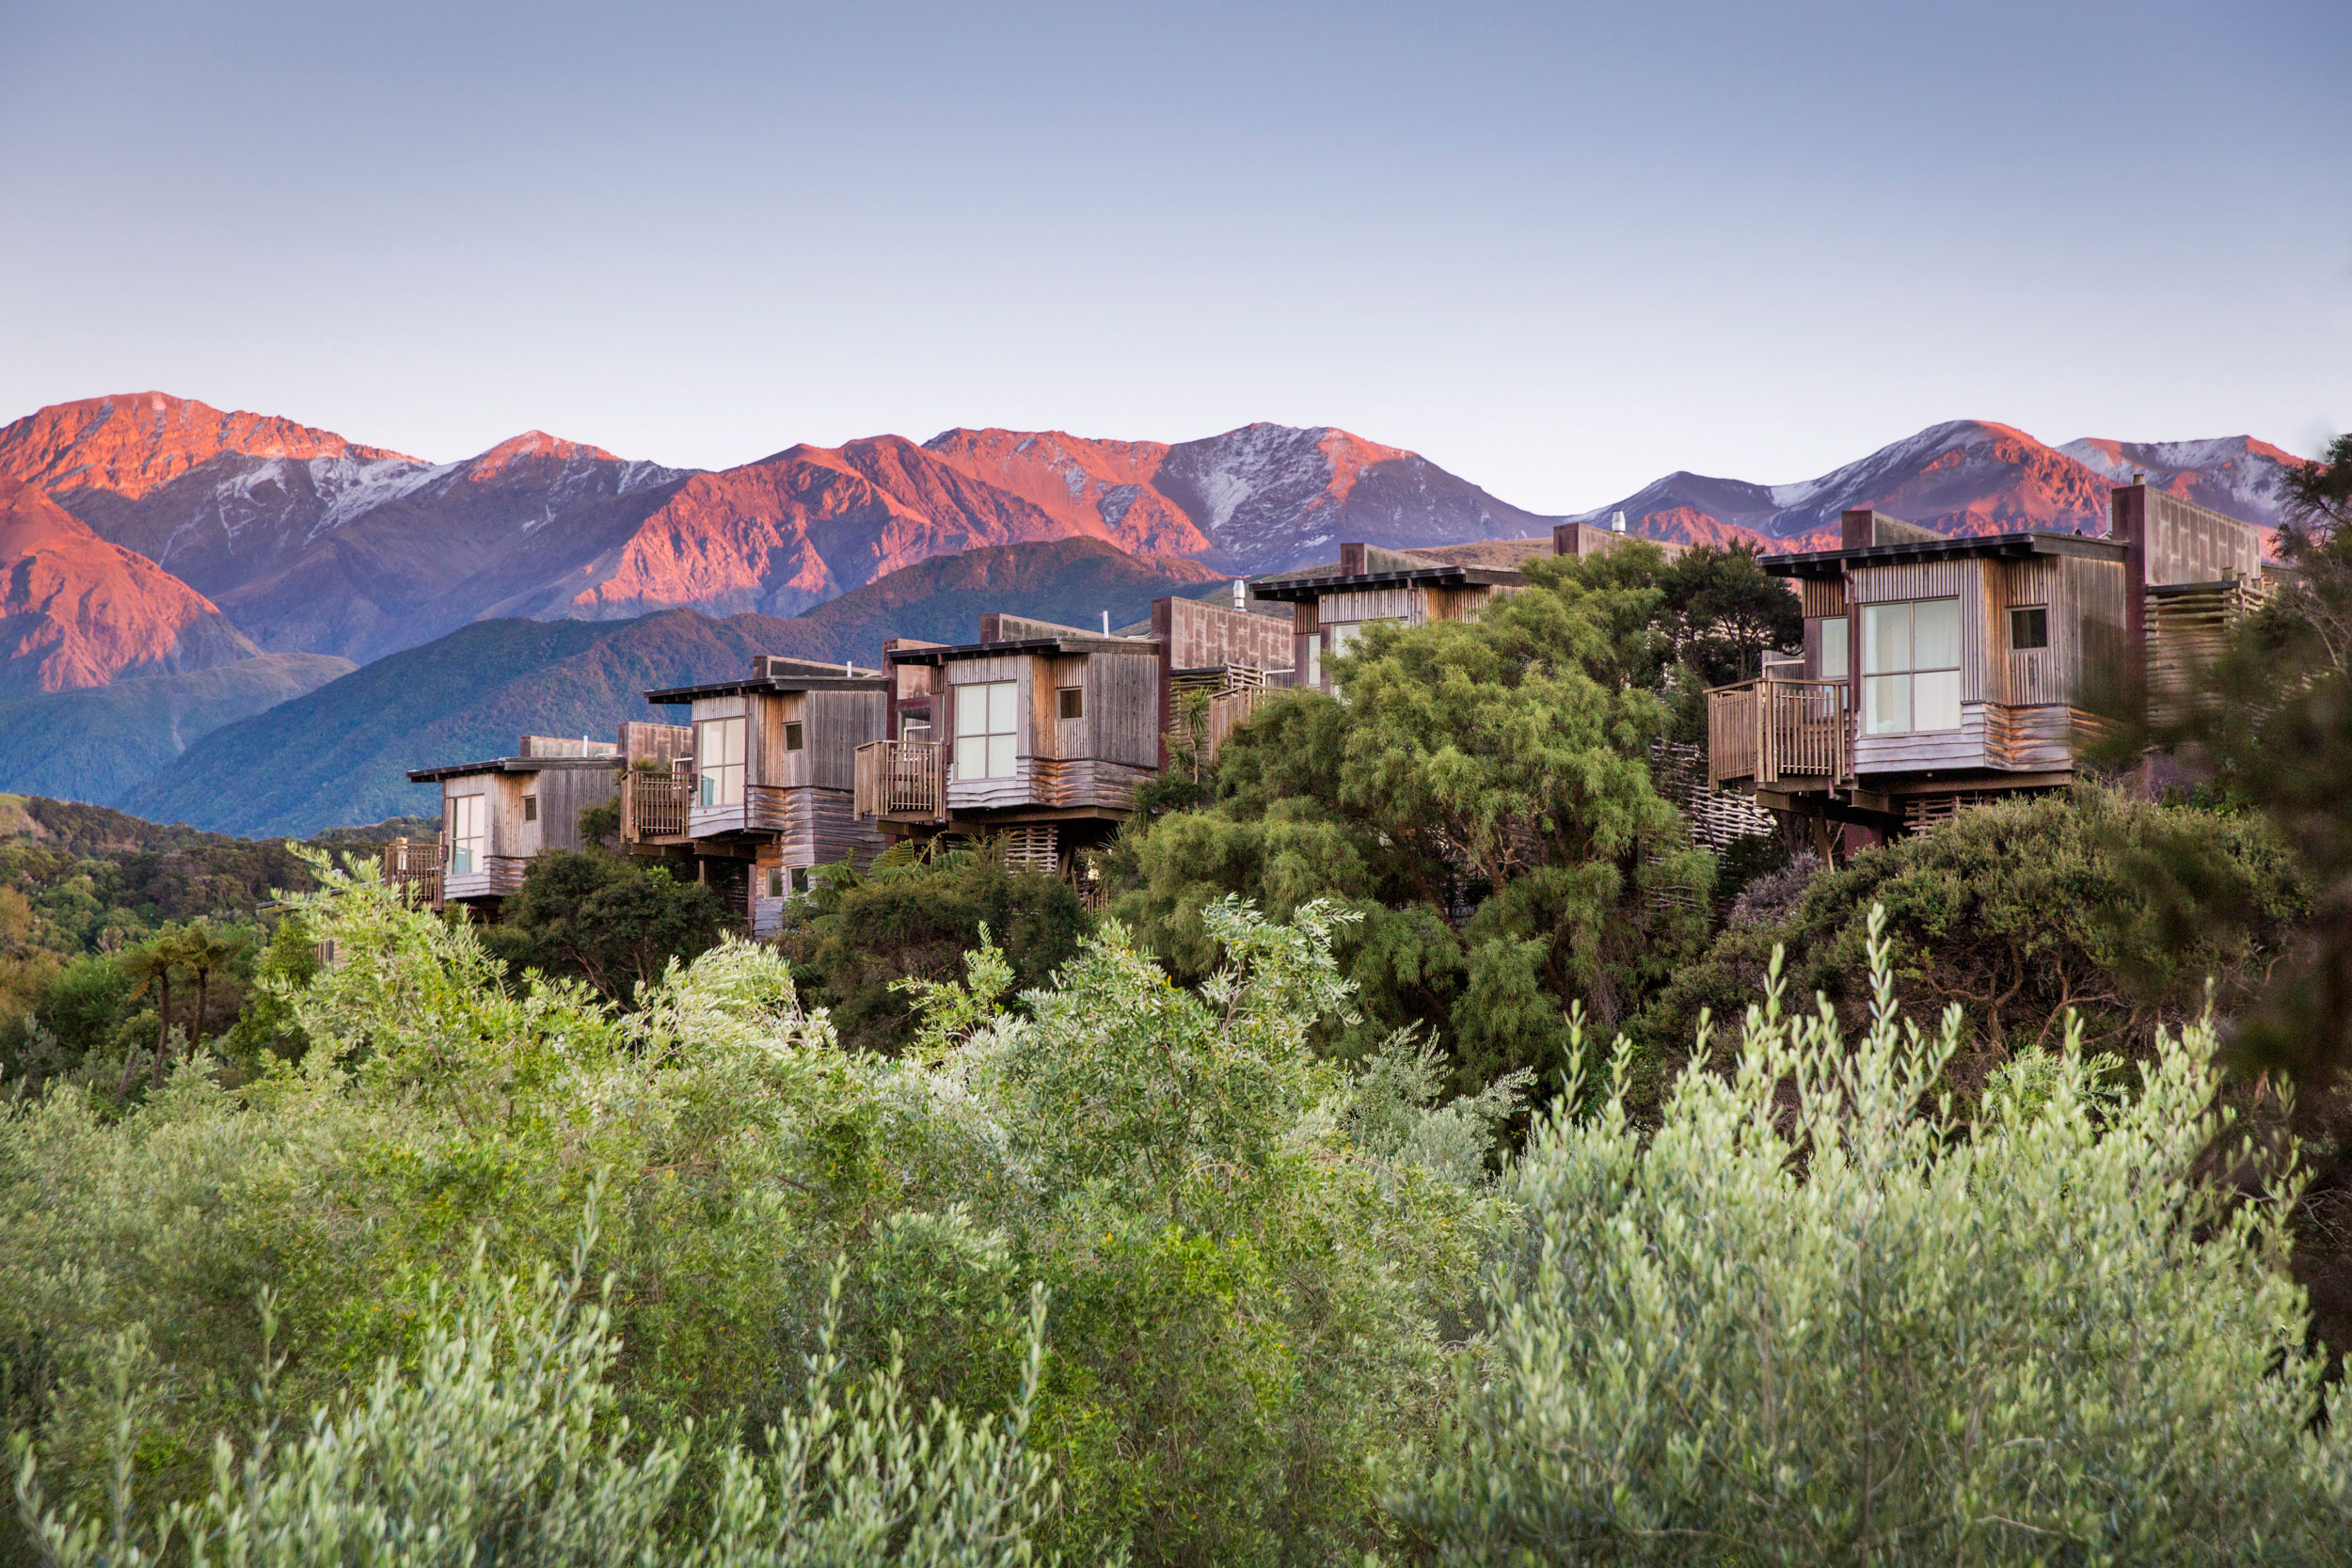 Hapuku Lodge and Treehouses is both an unusual and unusually luxurious property on the South Island of New Zealand.